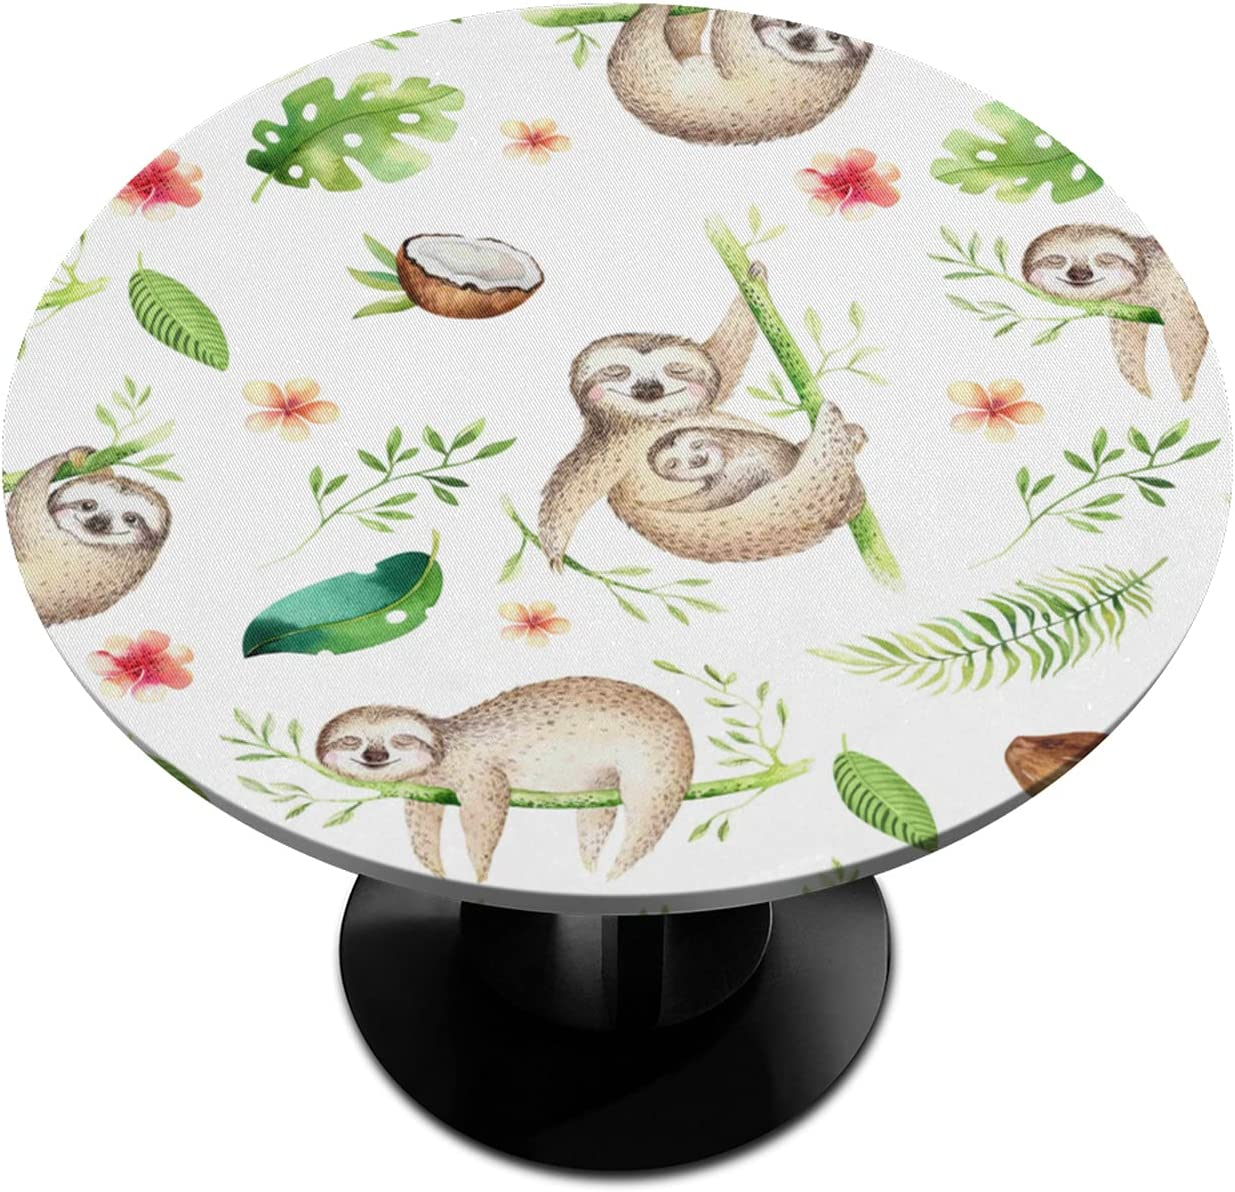 BOLOLI Animal Sloth Flower We OFFer at Max 67% OFF cheap prices Elastic Edged Round Fitted Tablecloth